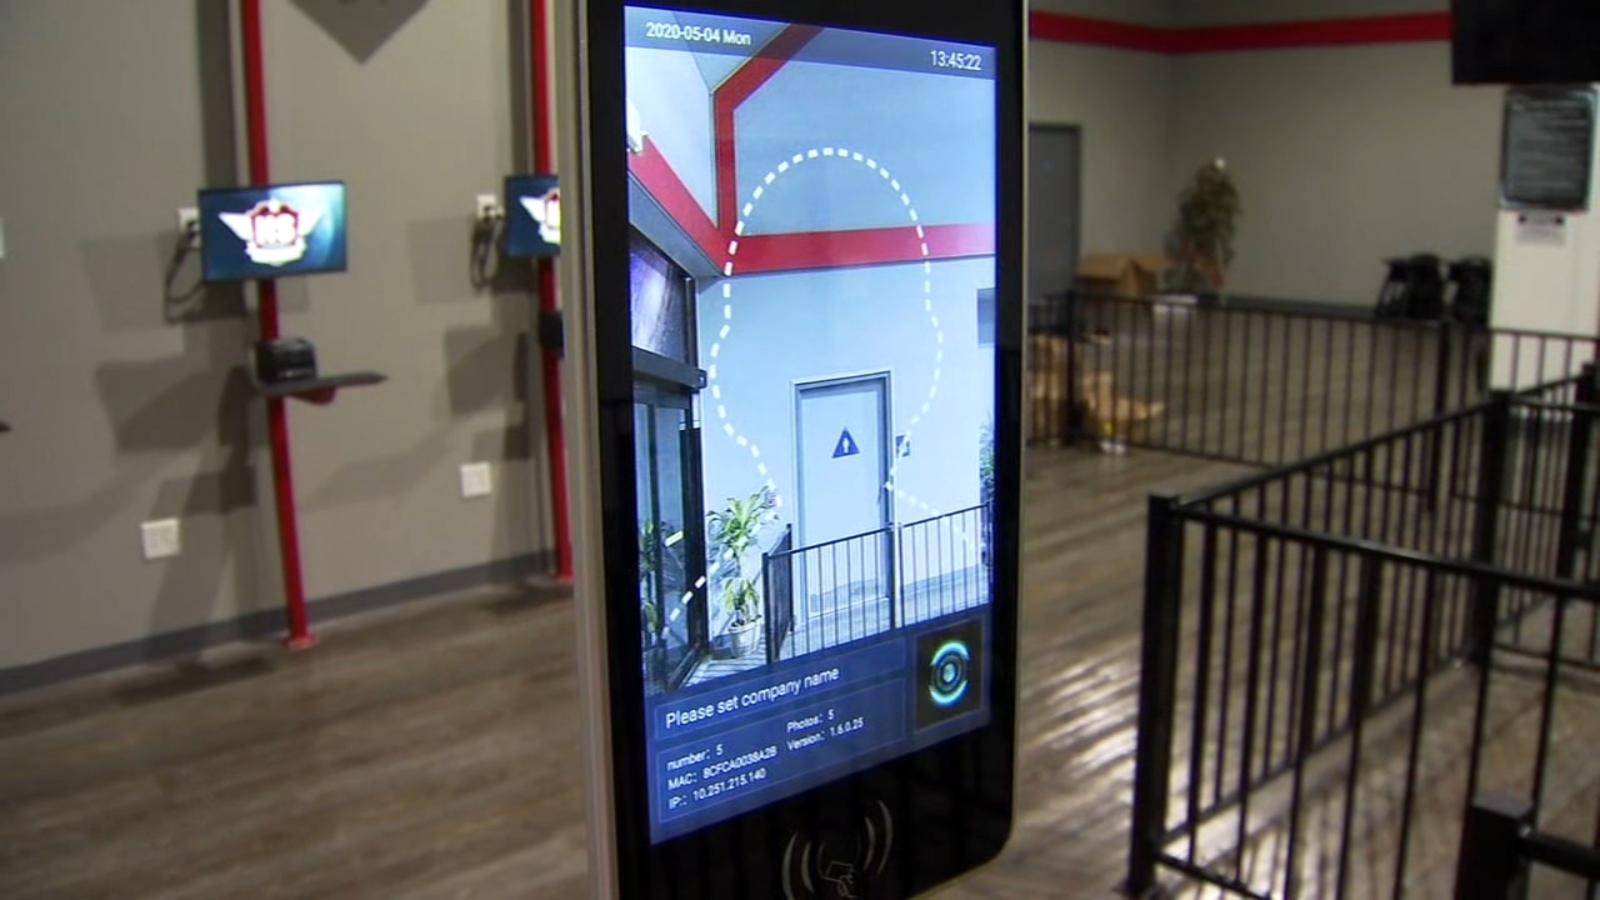 Local businesses using new technology to screen temperatures